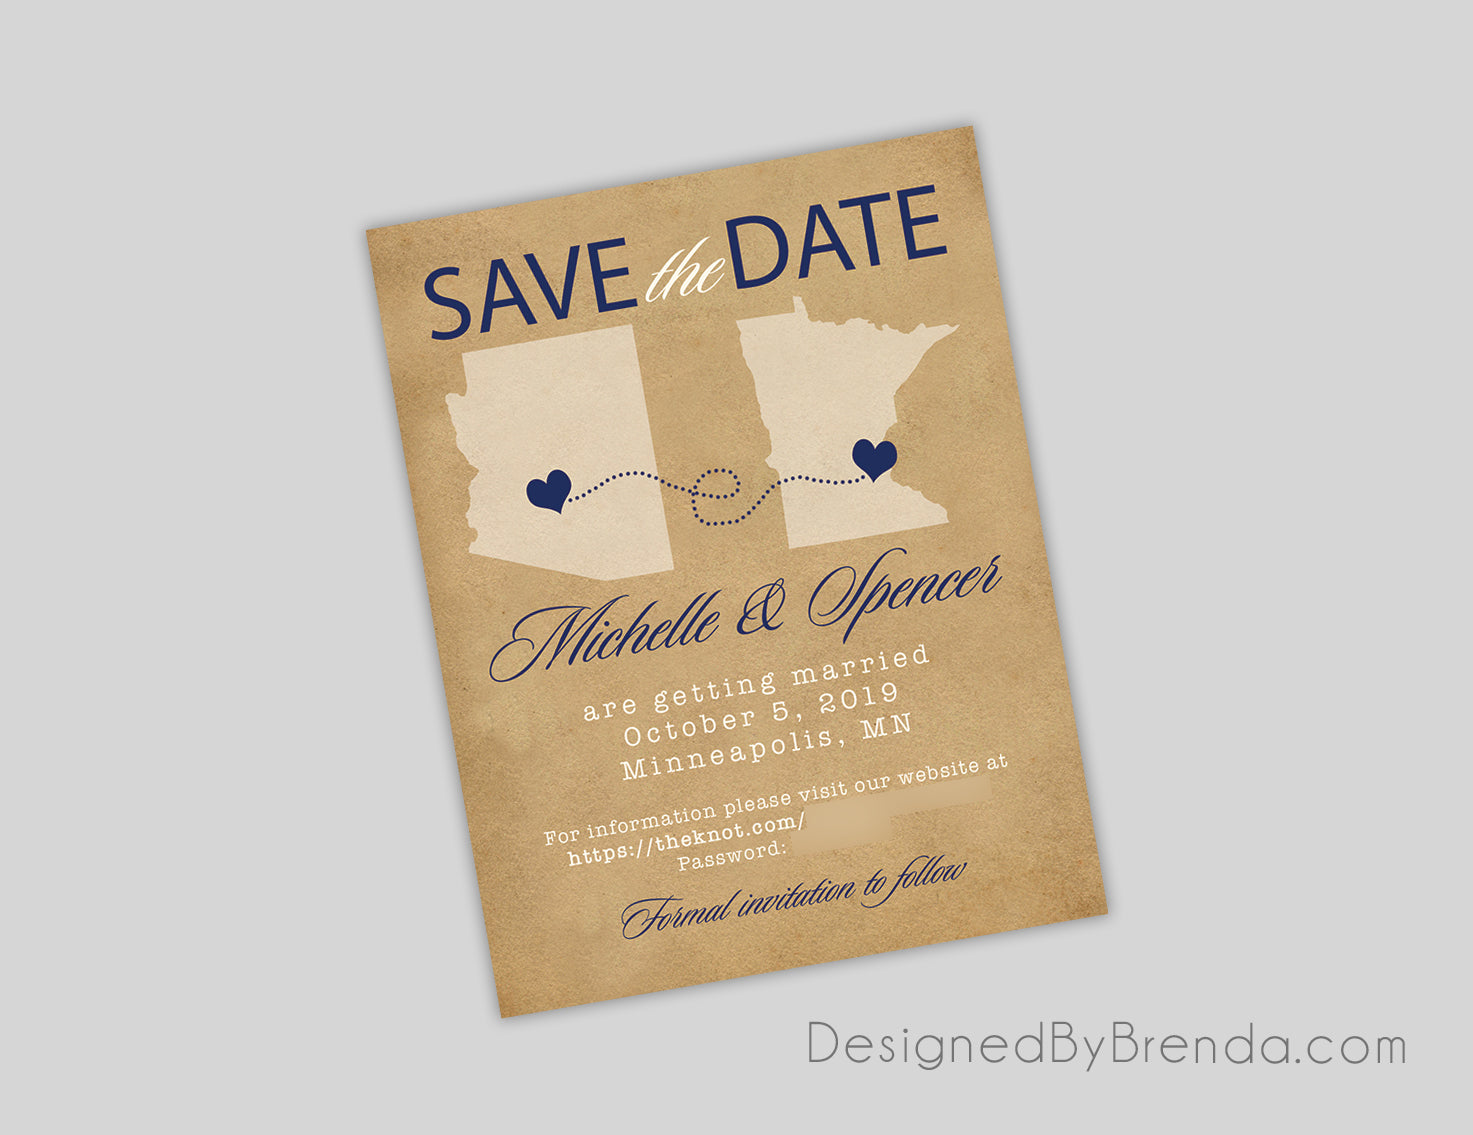 Vintage Save the Date Card with States and Hometowns - Rustic Look